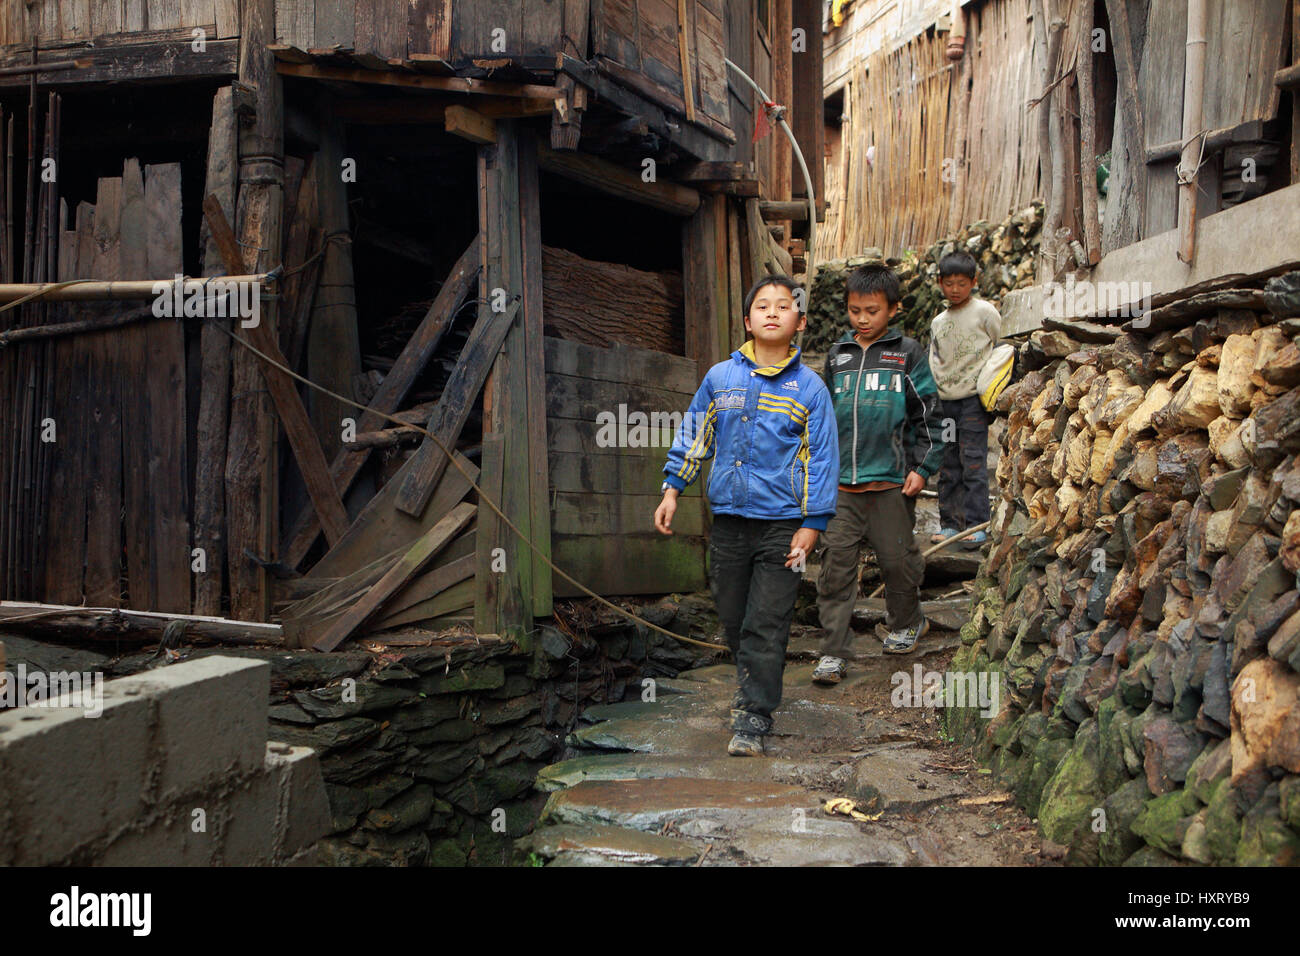 Xiaozhai village, Guangsi province,China - April 5, 2010: Rural schoolboys teenagers, 12 years old, walking down - Stock Image